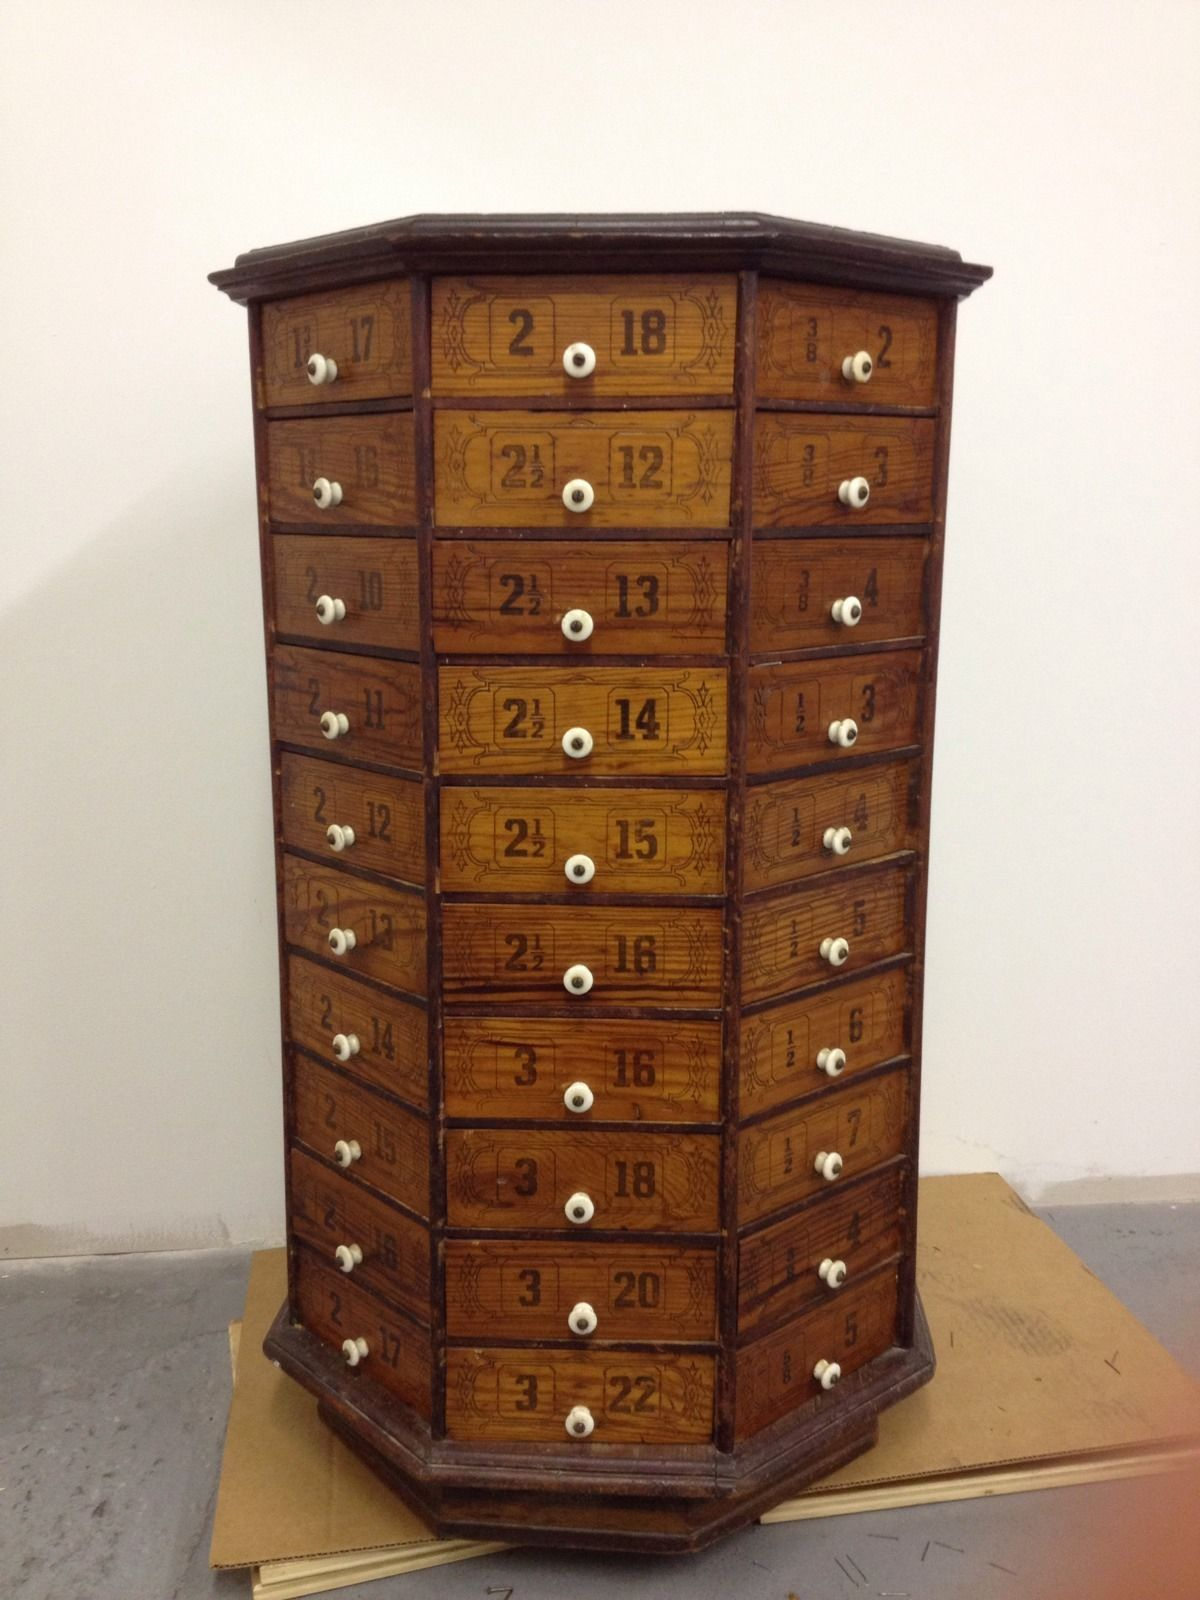 Antique Wood Hardware Store Cabinet 80 Drawers Rotates - Antique Wood Hardware Store Cabinet 80 Drawers Rotates Antique